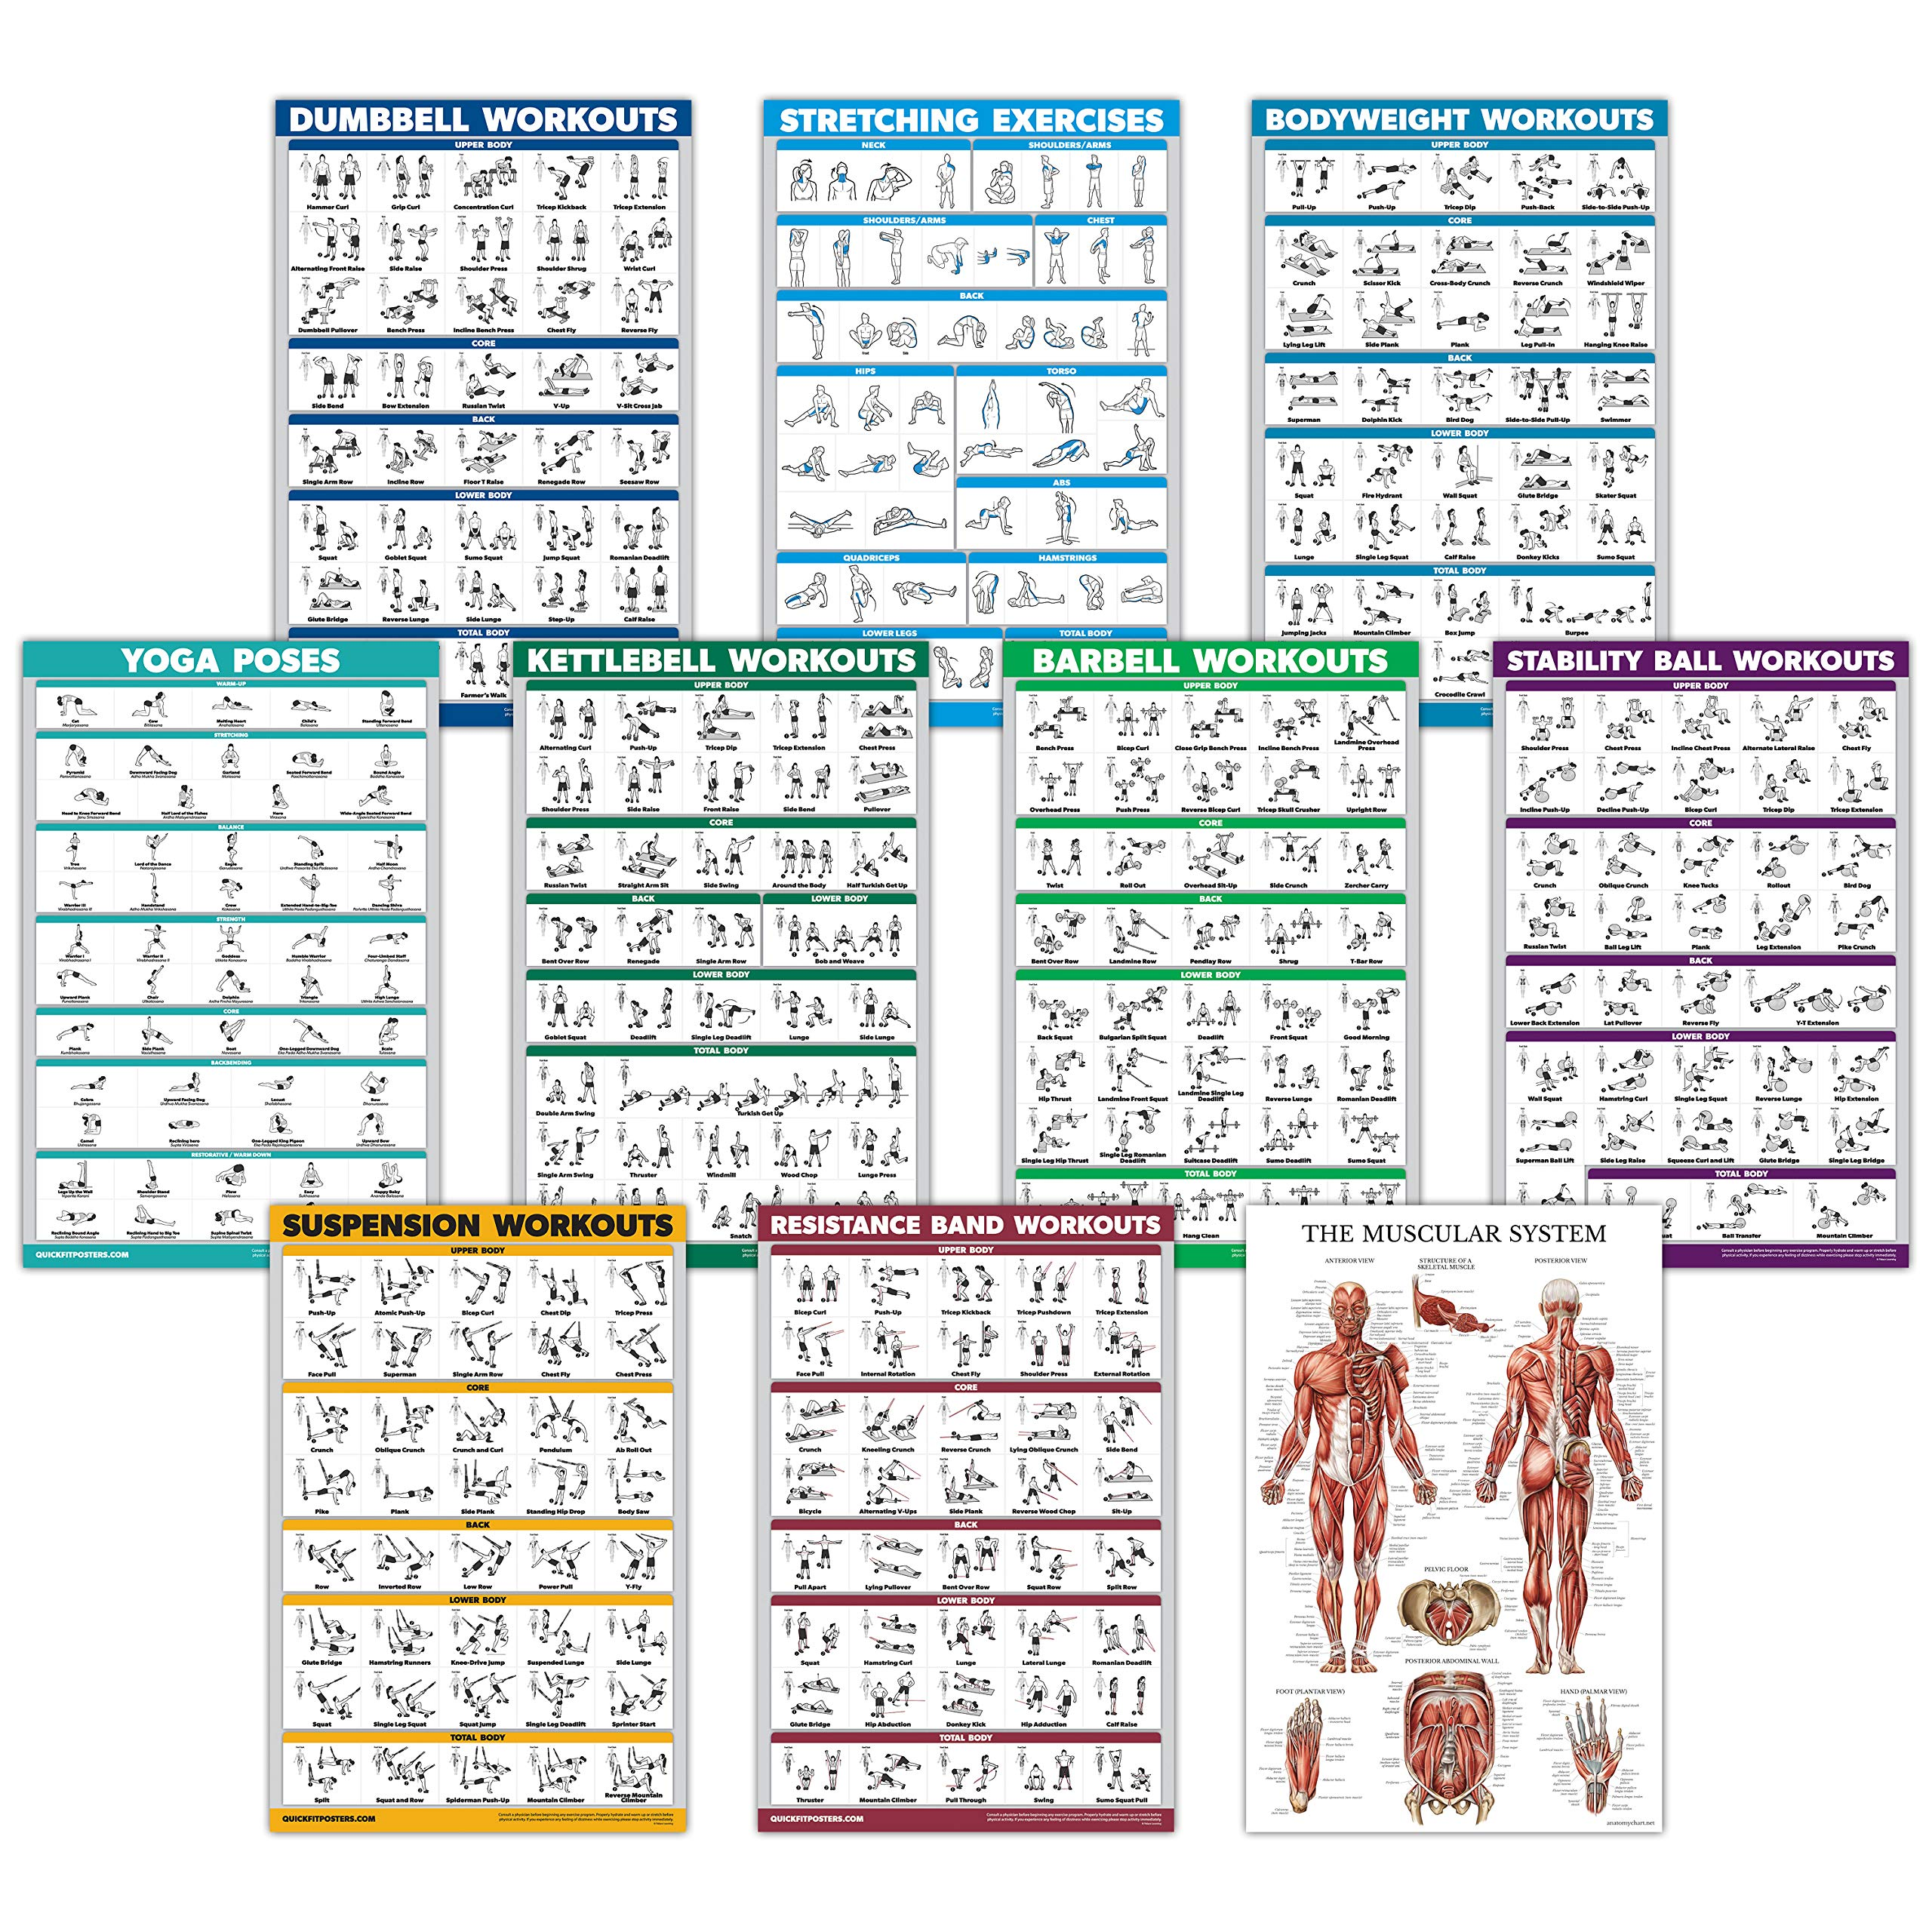 10 Pack - Exercise Workout Poster Set - Dumbbell, Suspension, Kettlebell, Resistance Bands, Stretching, Bodyweight, Barbell, Yoga Poses, Stability Ball, Muscular System Chart (LAMINATED, 18'' x 27'')